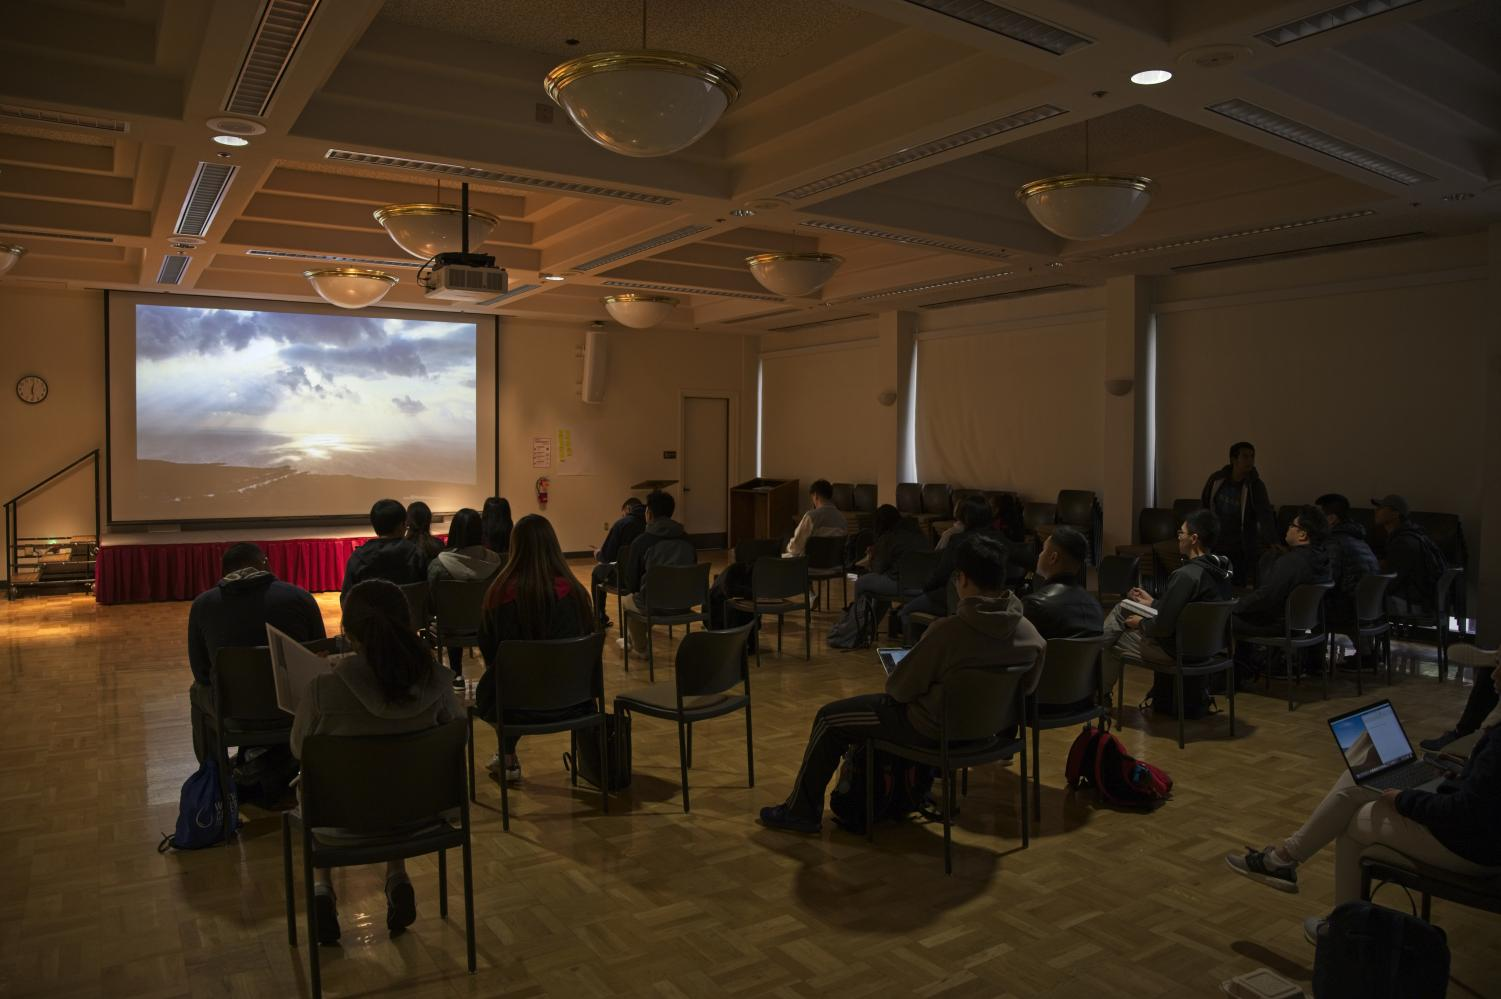 Students view a screening of